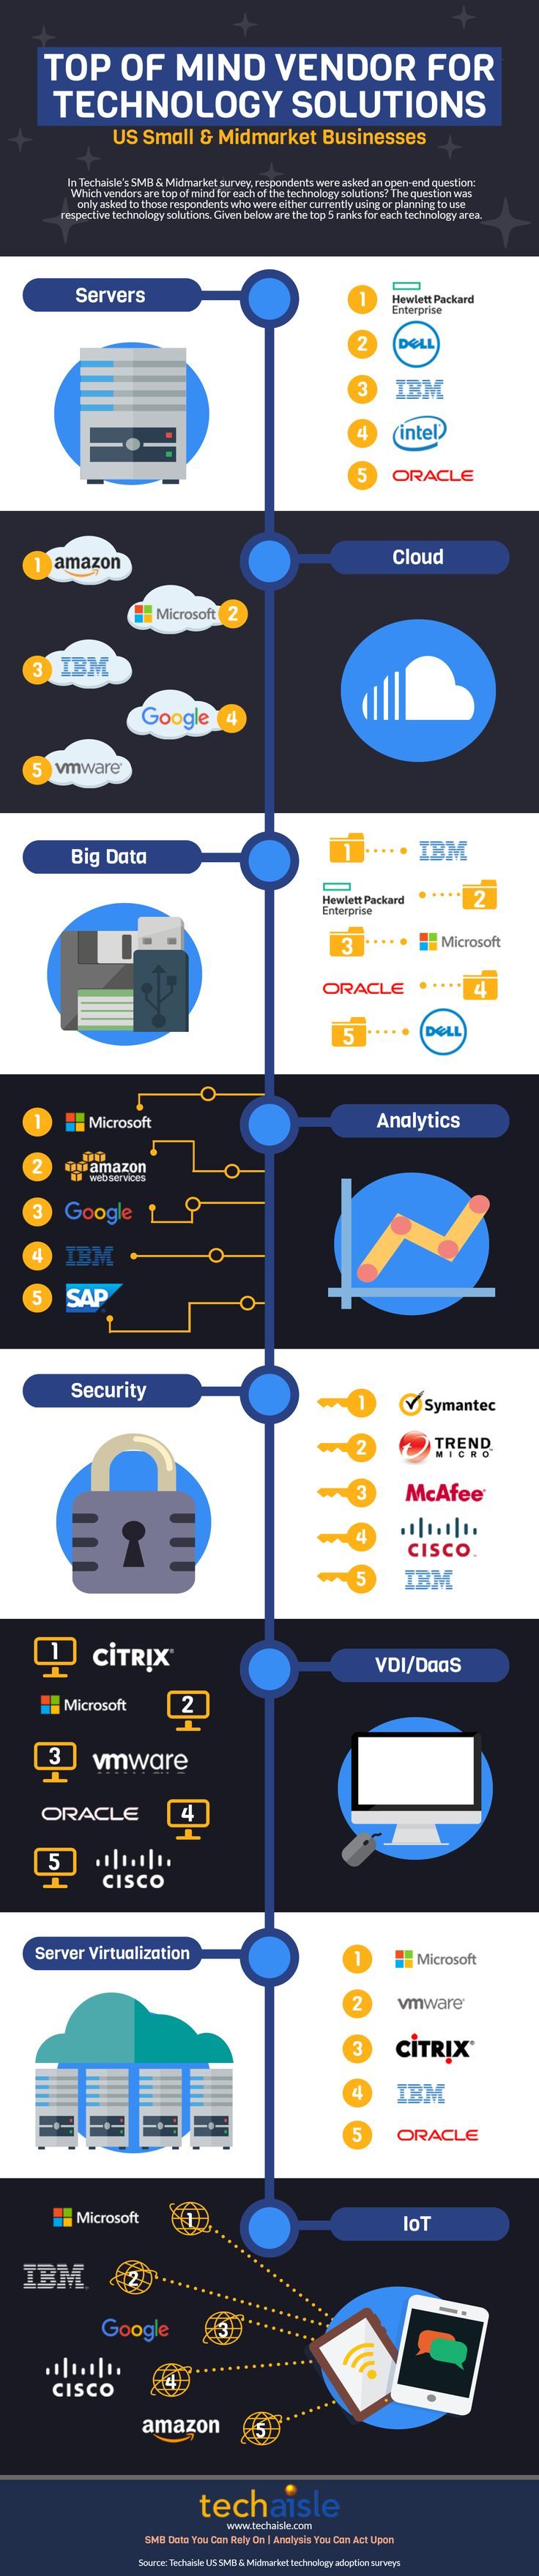 In Techaisle's US SMB & Midmarket survey, respondents were asked an open-end question: Which vendors are top of mind for each of the technology solutions? The question was only asked to those respondents who were either currently using or planning to use respective technology solutions. The infographic shows top 5 ranks for each technology area - Servers, Cloud, Security, Big Data, Analytics, Server Virtualization, VDI, DaaS